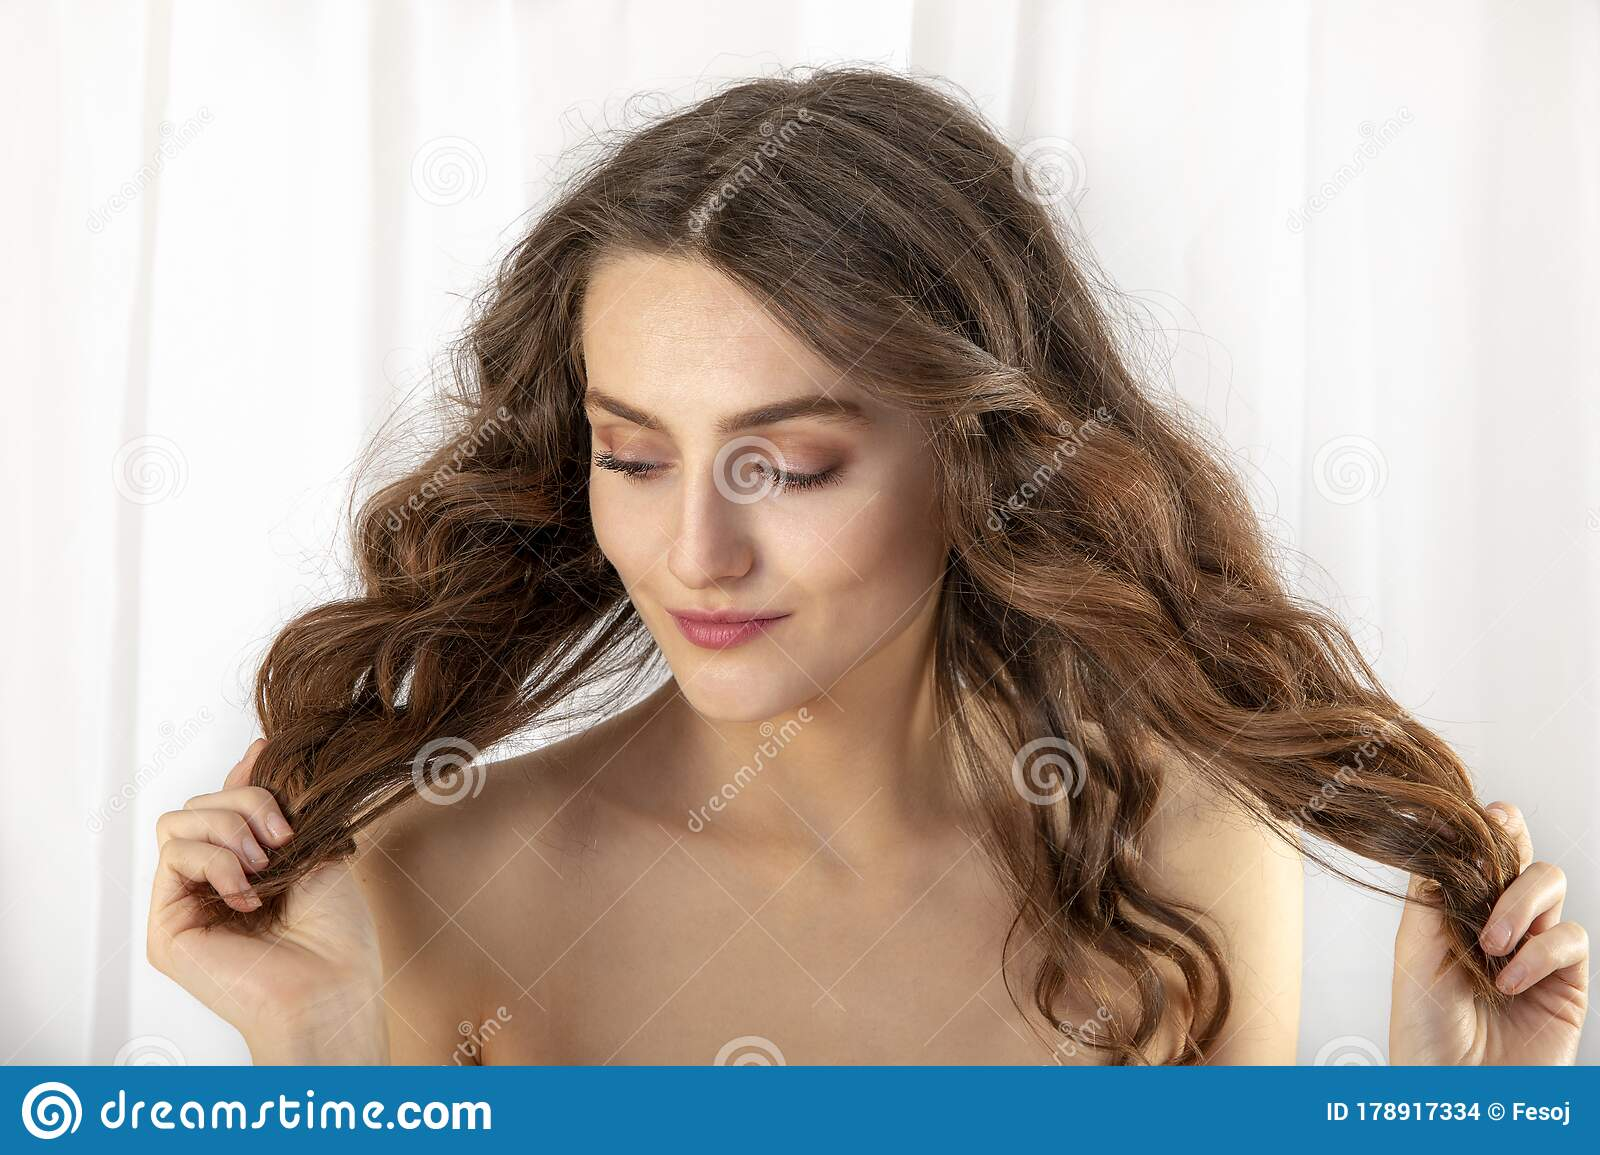 Young Woman Looking Over Shoulder Portrait High-Res Stock